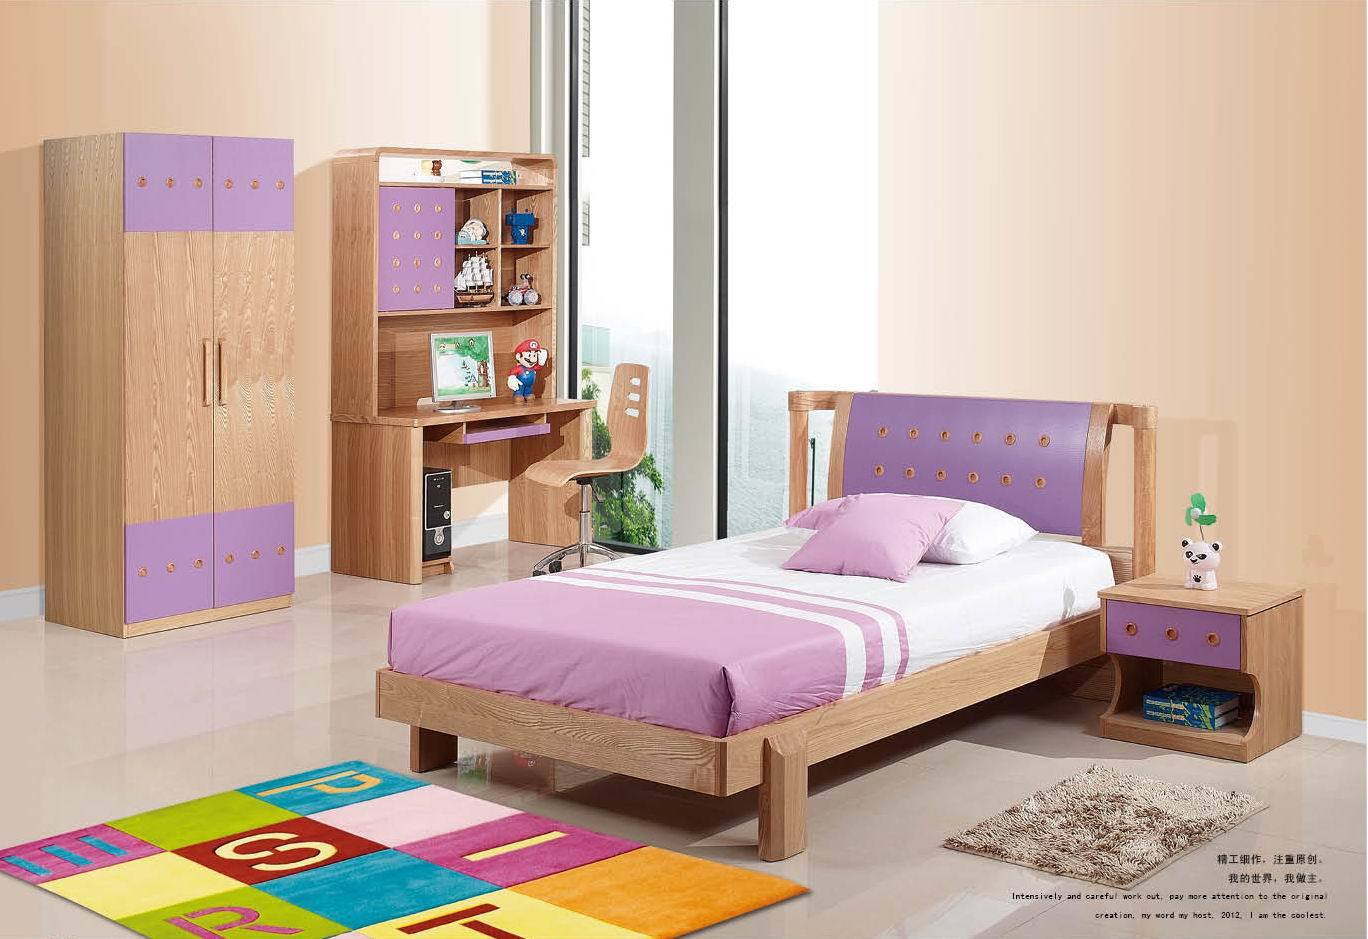 Great Kids Bedroom Set (JKD-20130#) 1368 x 939 · 149 kB · jpeg